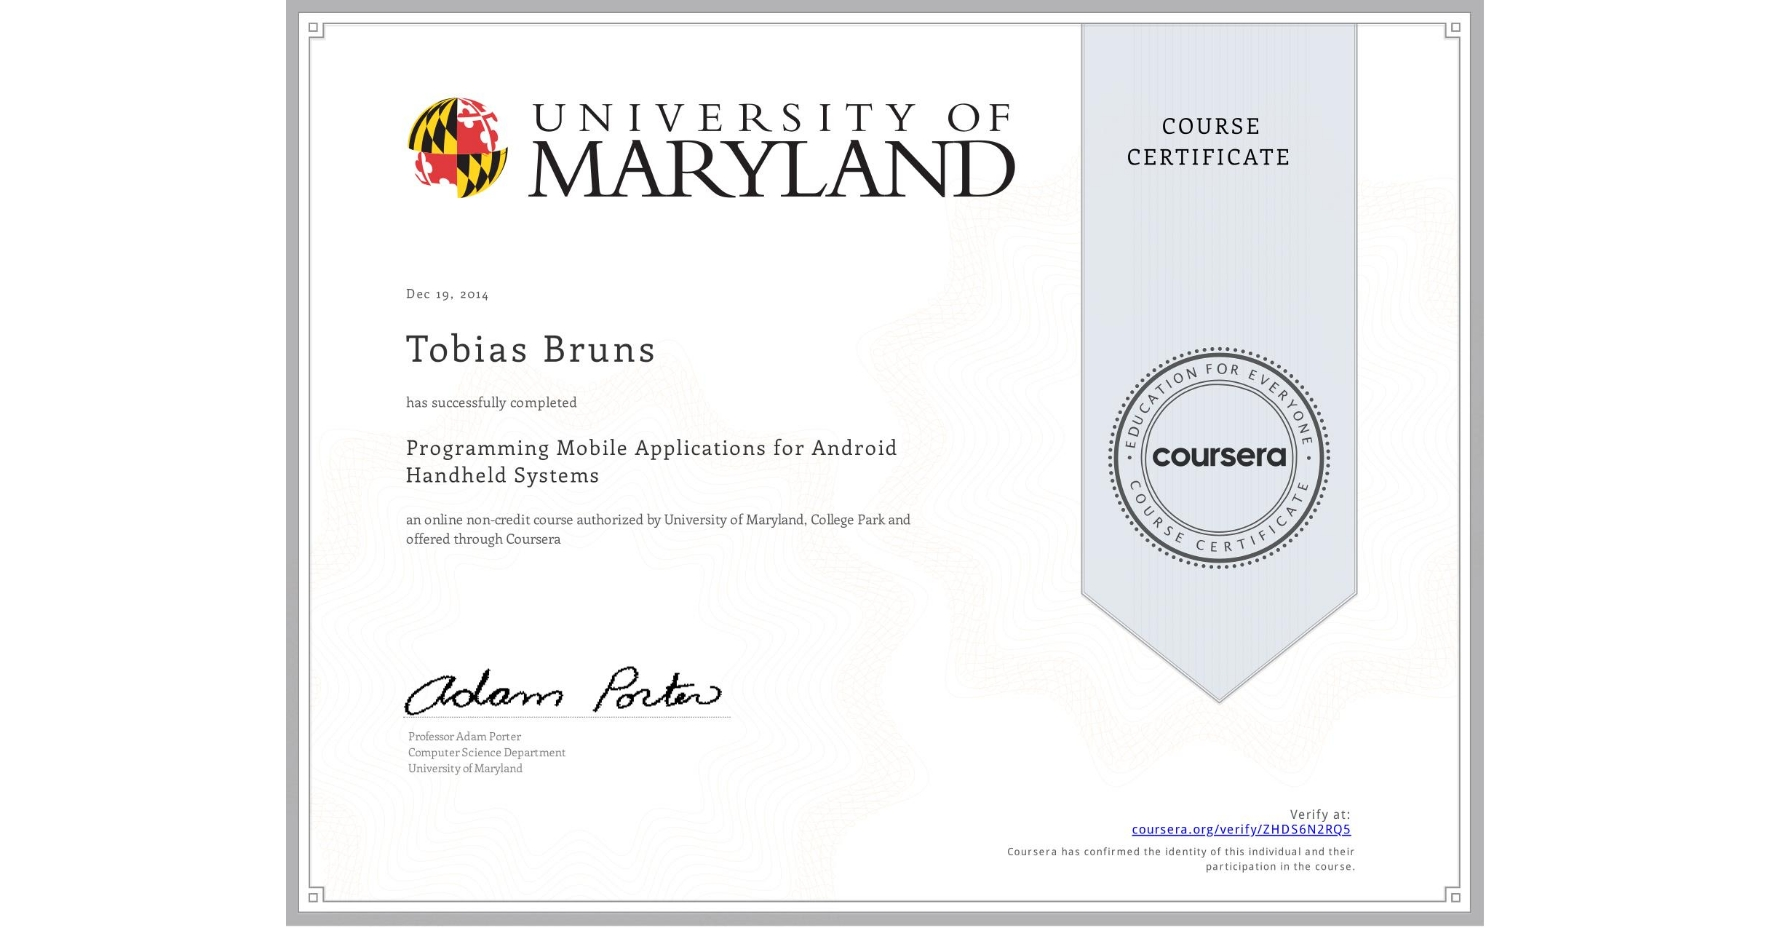 View certificate for Tobias Bruns, Programming Mobile Applications for Android Handheld Systems, an online non-credit course authorized by University of Maryland, College Park and offered through Coursera